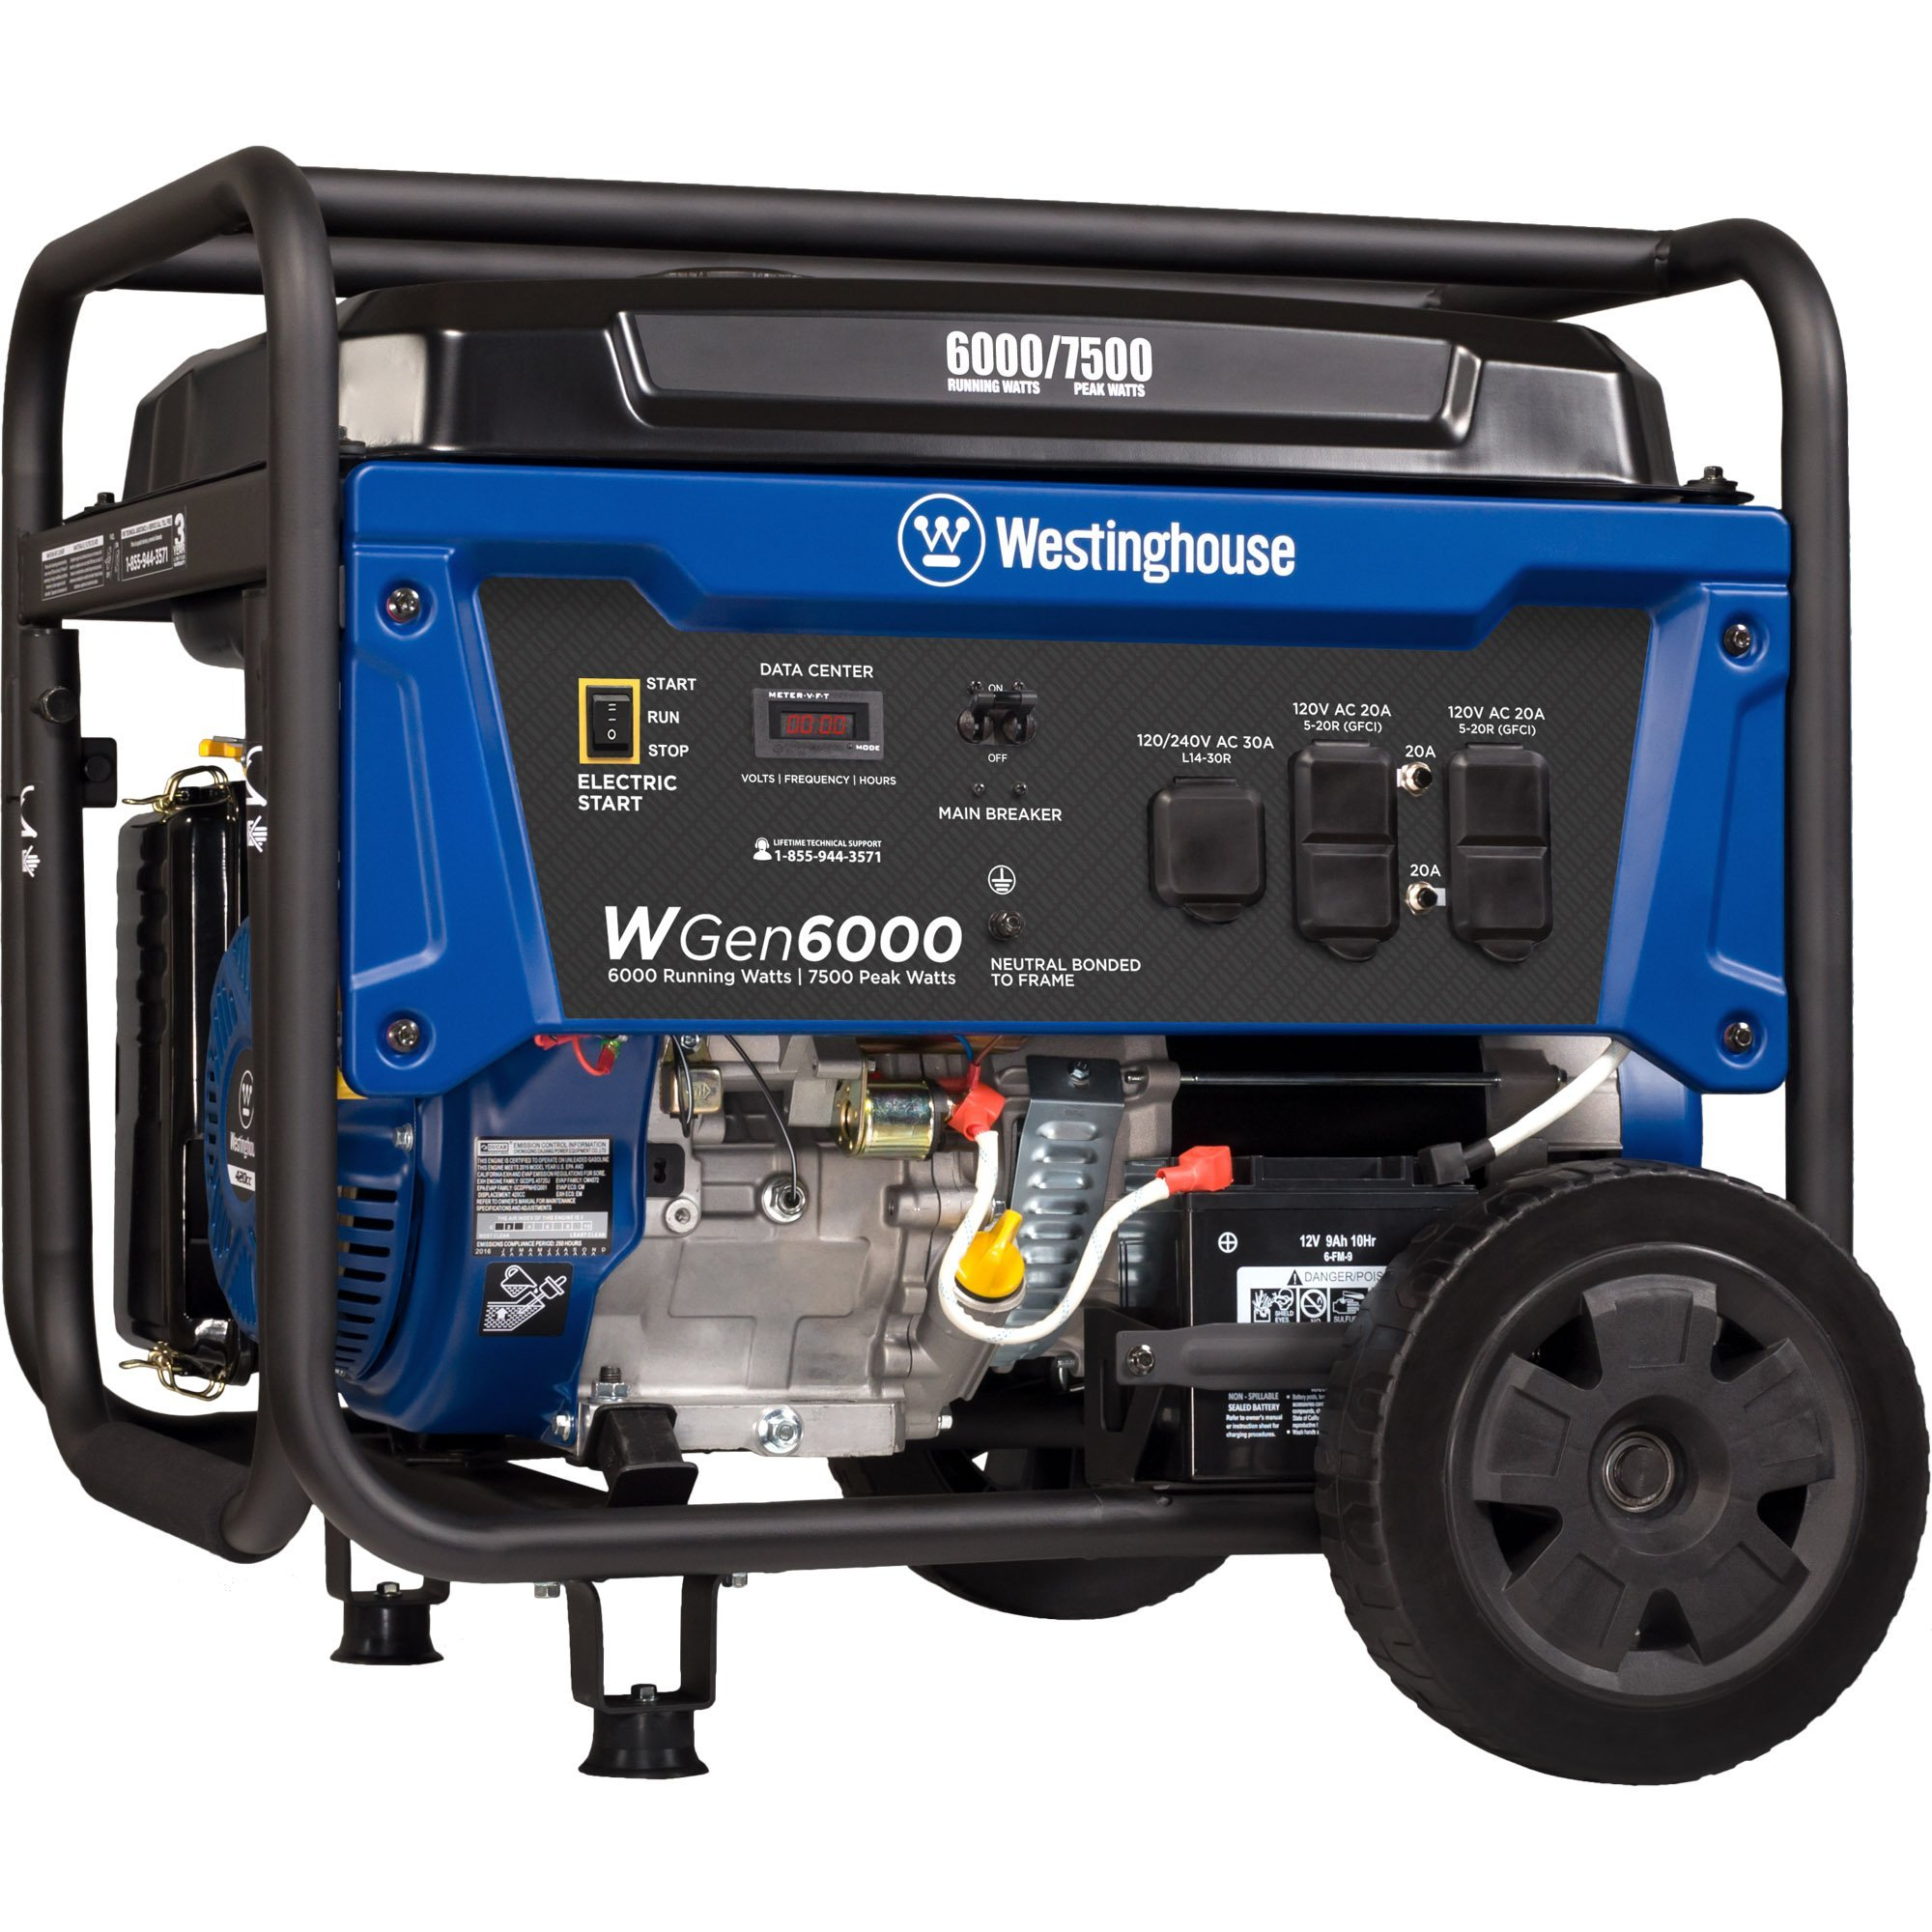 Westinghouse WGen6000 Portable Generator with Electric Start - 6000 Rated Watts & 7500 Peak Watts - Gas Powered - CARB Compliant by Westinghouse